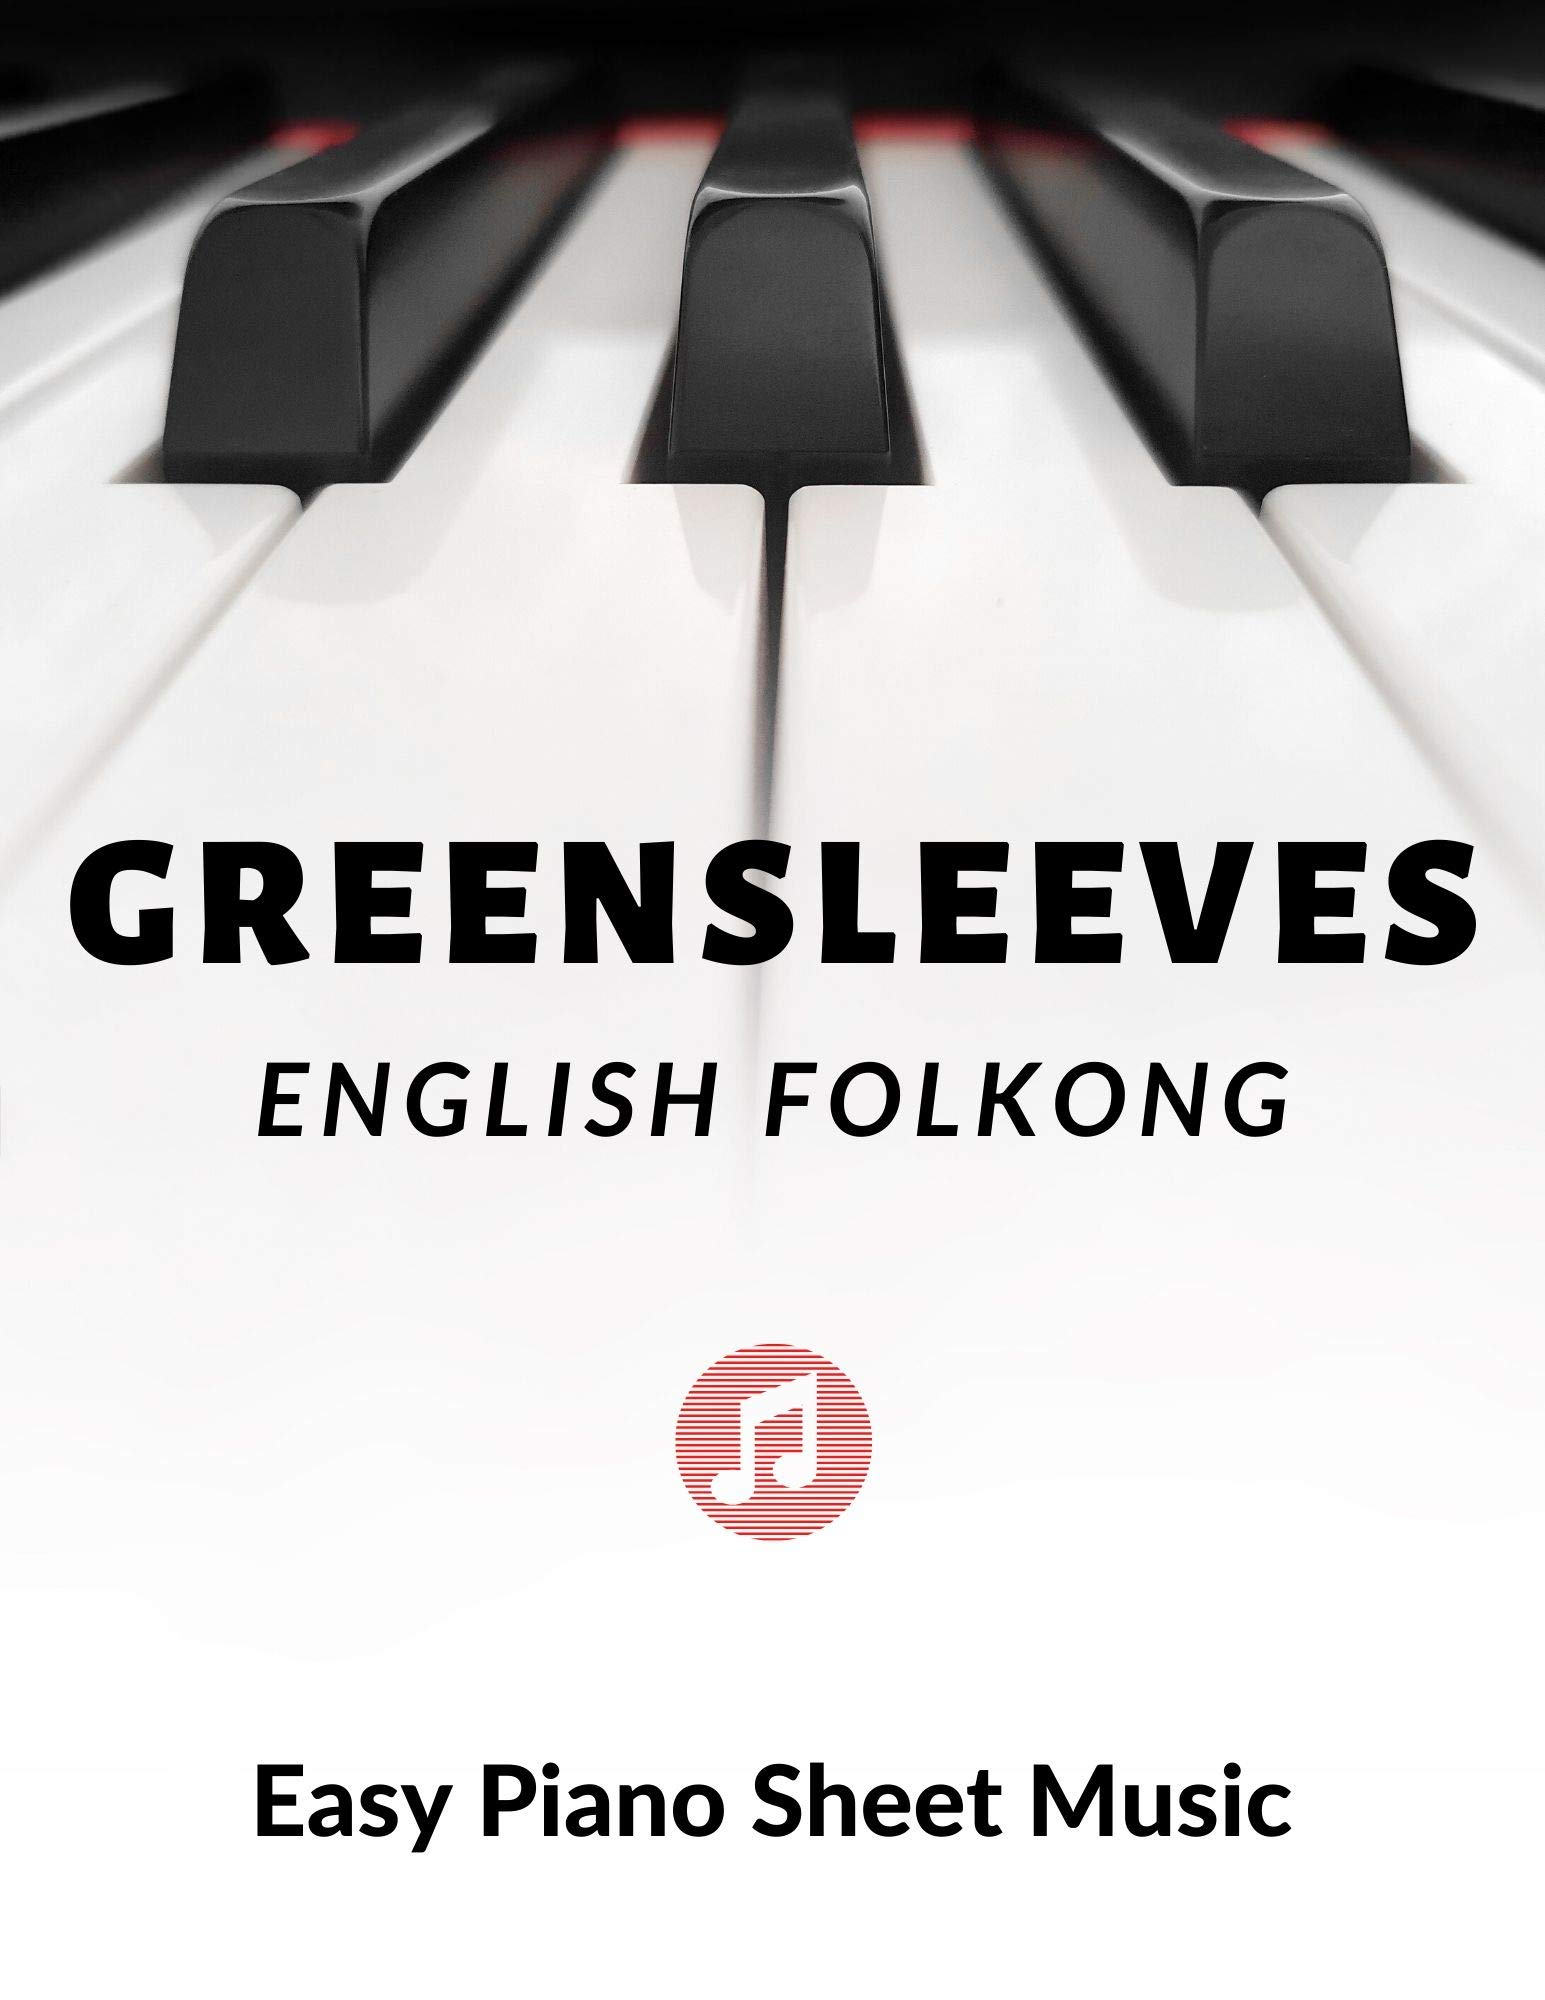 GREENSLEEVES – Easy Piano Sheet Music for Beginner - BIG Notes - Video Tutorial: Teach Yourself How to Play. Popular, Traditional Song For Kids, Adults, Young Musicians, Students, Teachers.